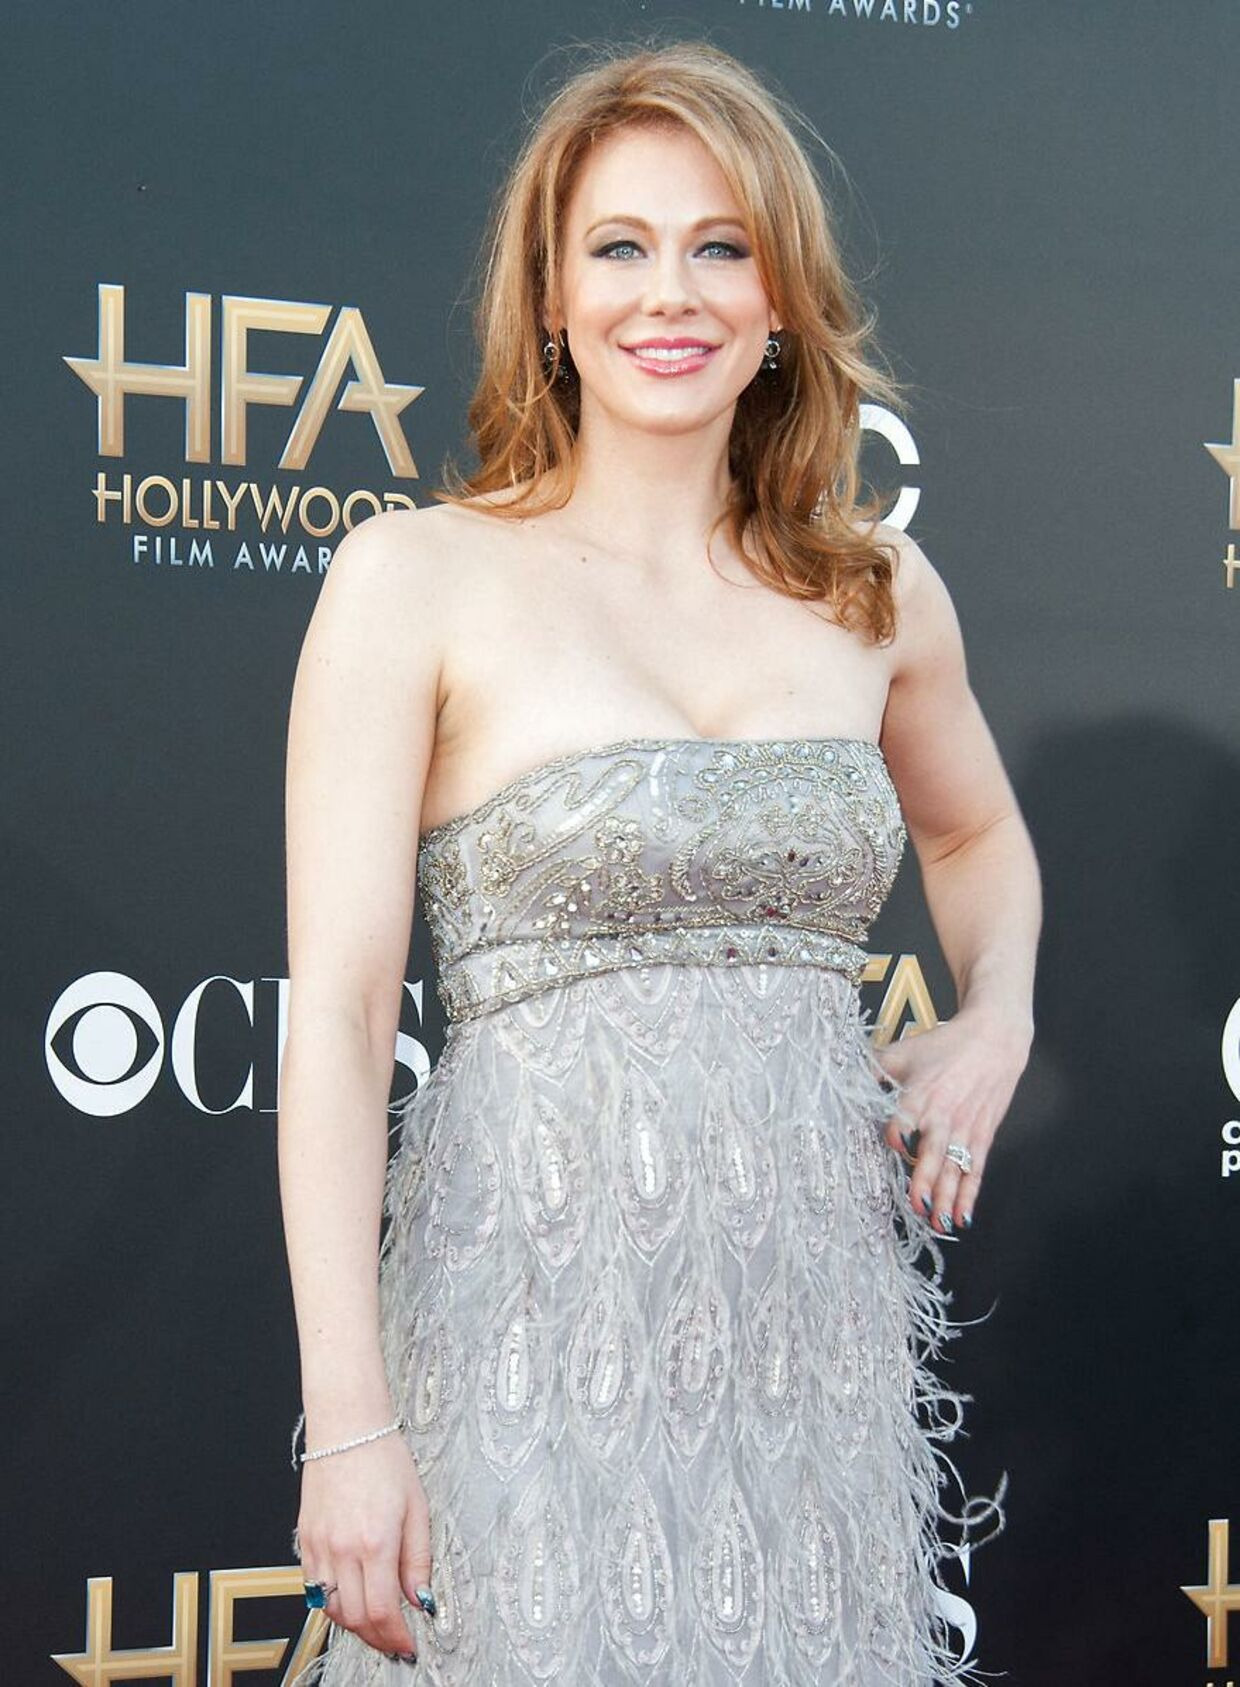 Maitland Ward på den røde løber til Hollywood Film Awards i november 2014.